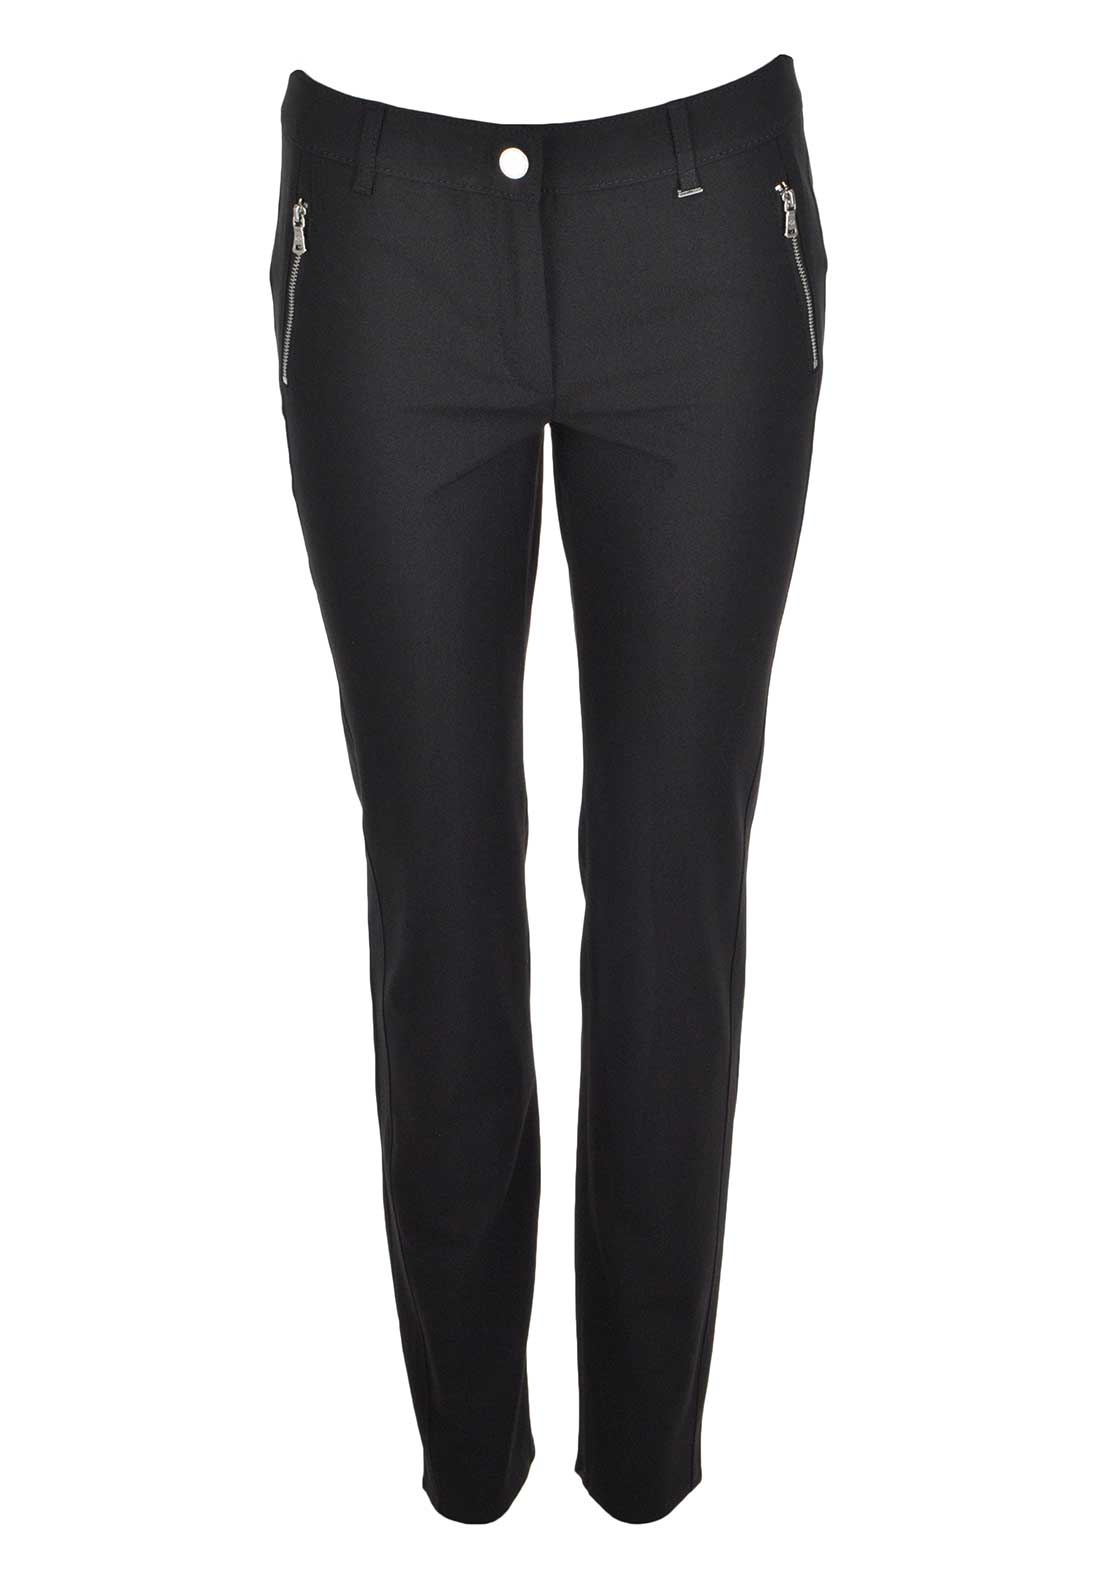 Gerry Weber Zipped Trouser, Black